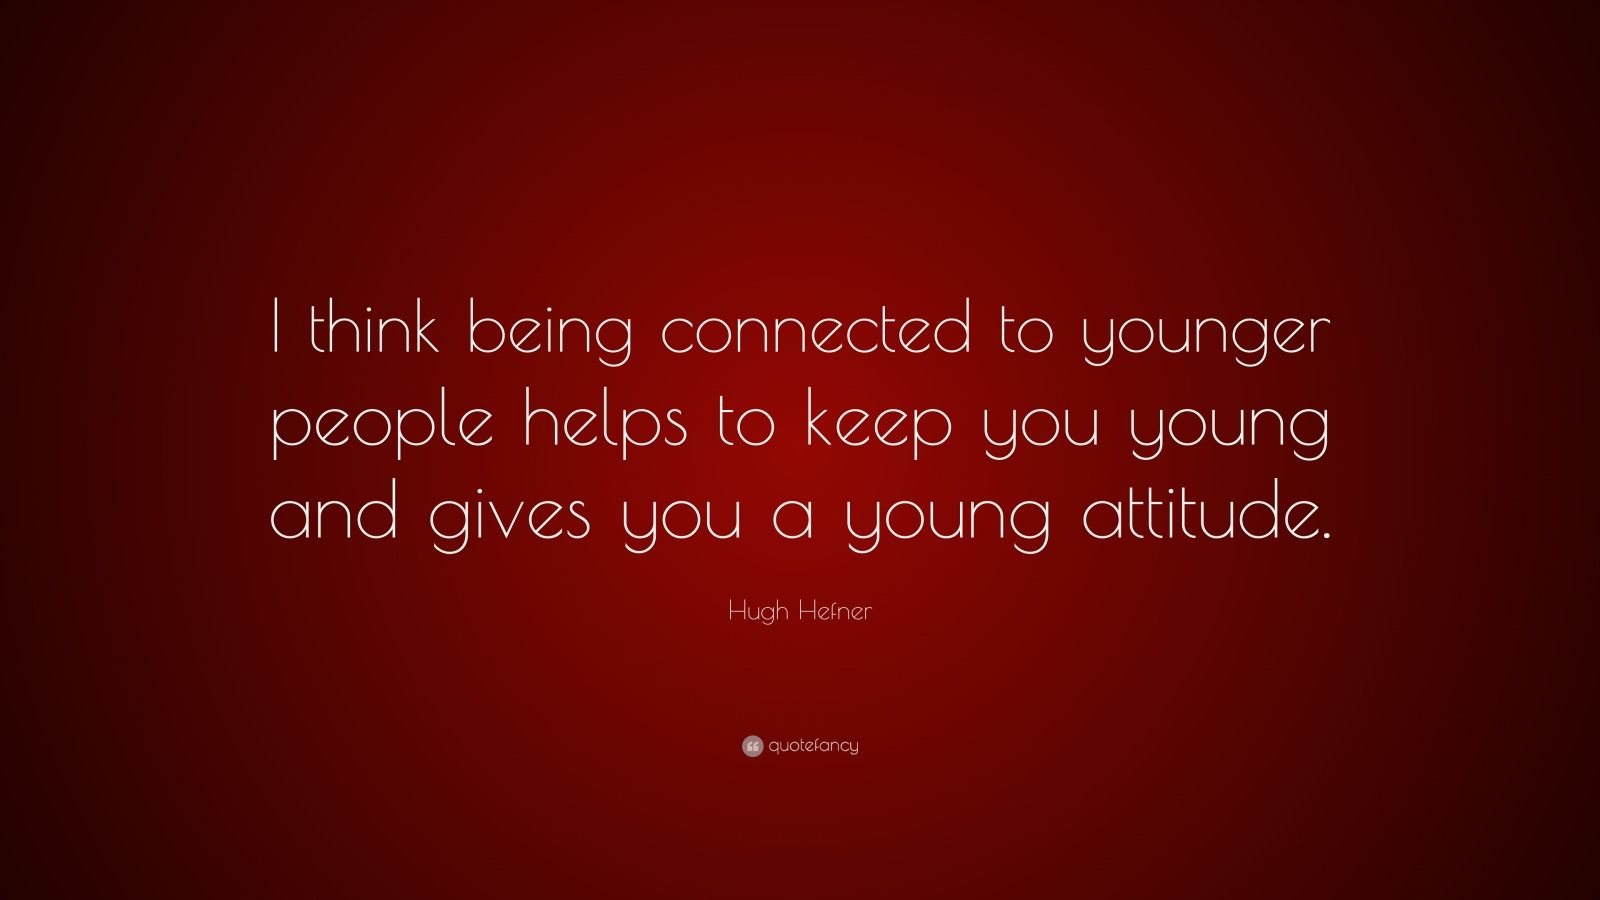 """Hugh Hefner Quote: """"I think being connected to younger people helps to keep you young and gives you a young attitude."""""""